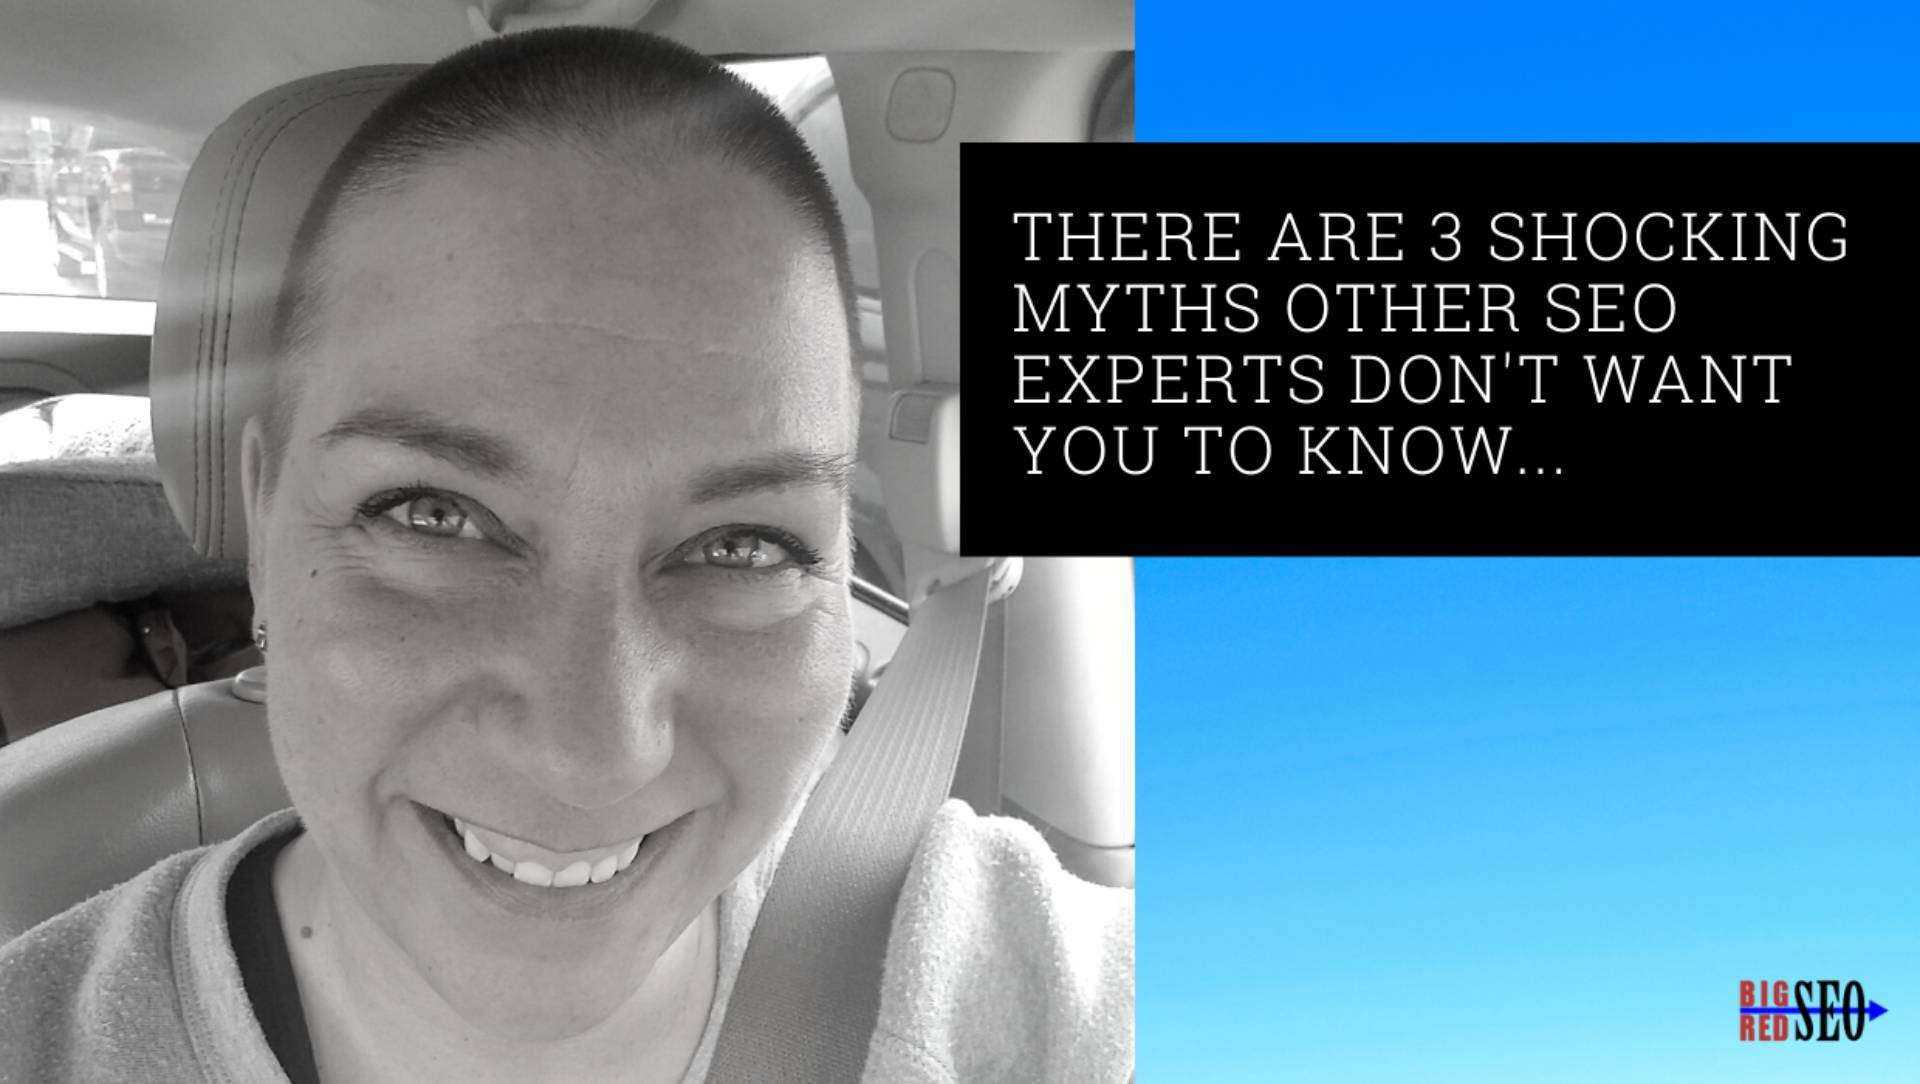 Omaha SEO Experts shares 3 shocking SEO myths for small business